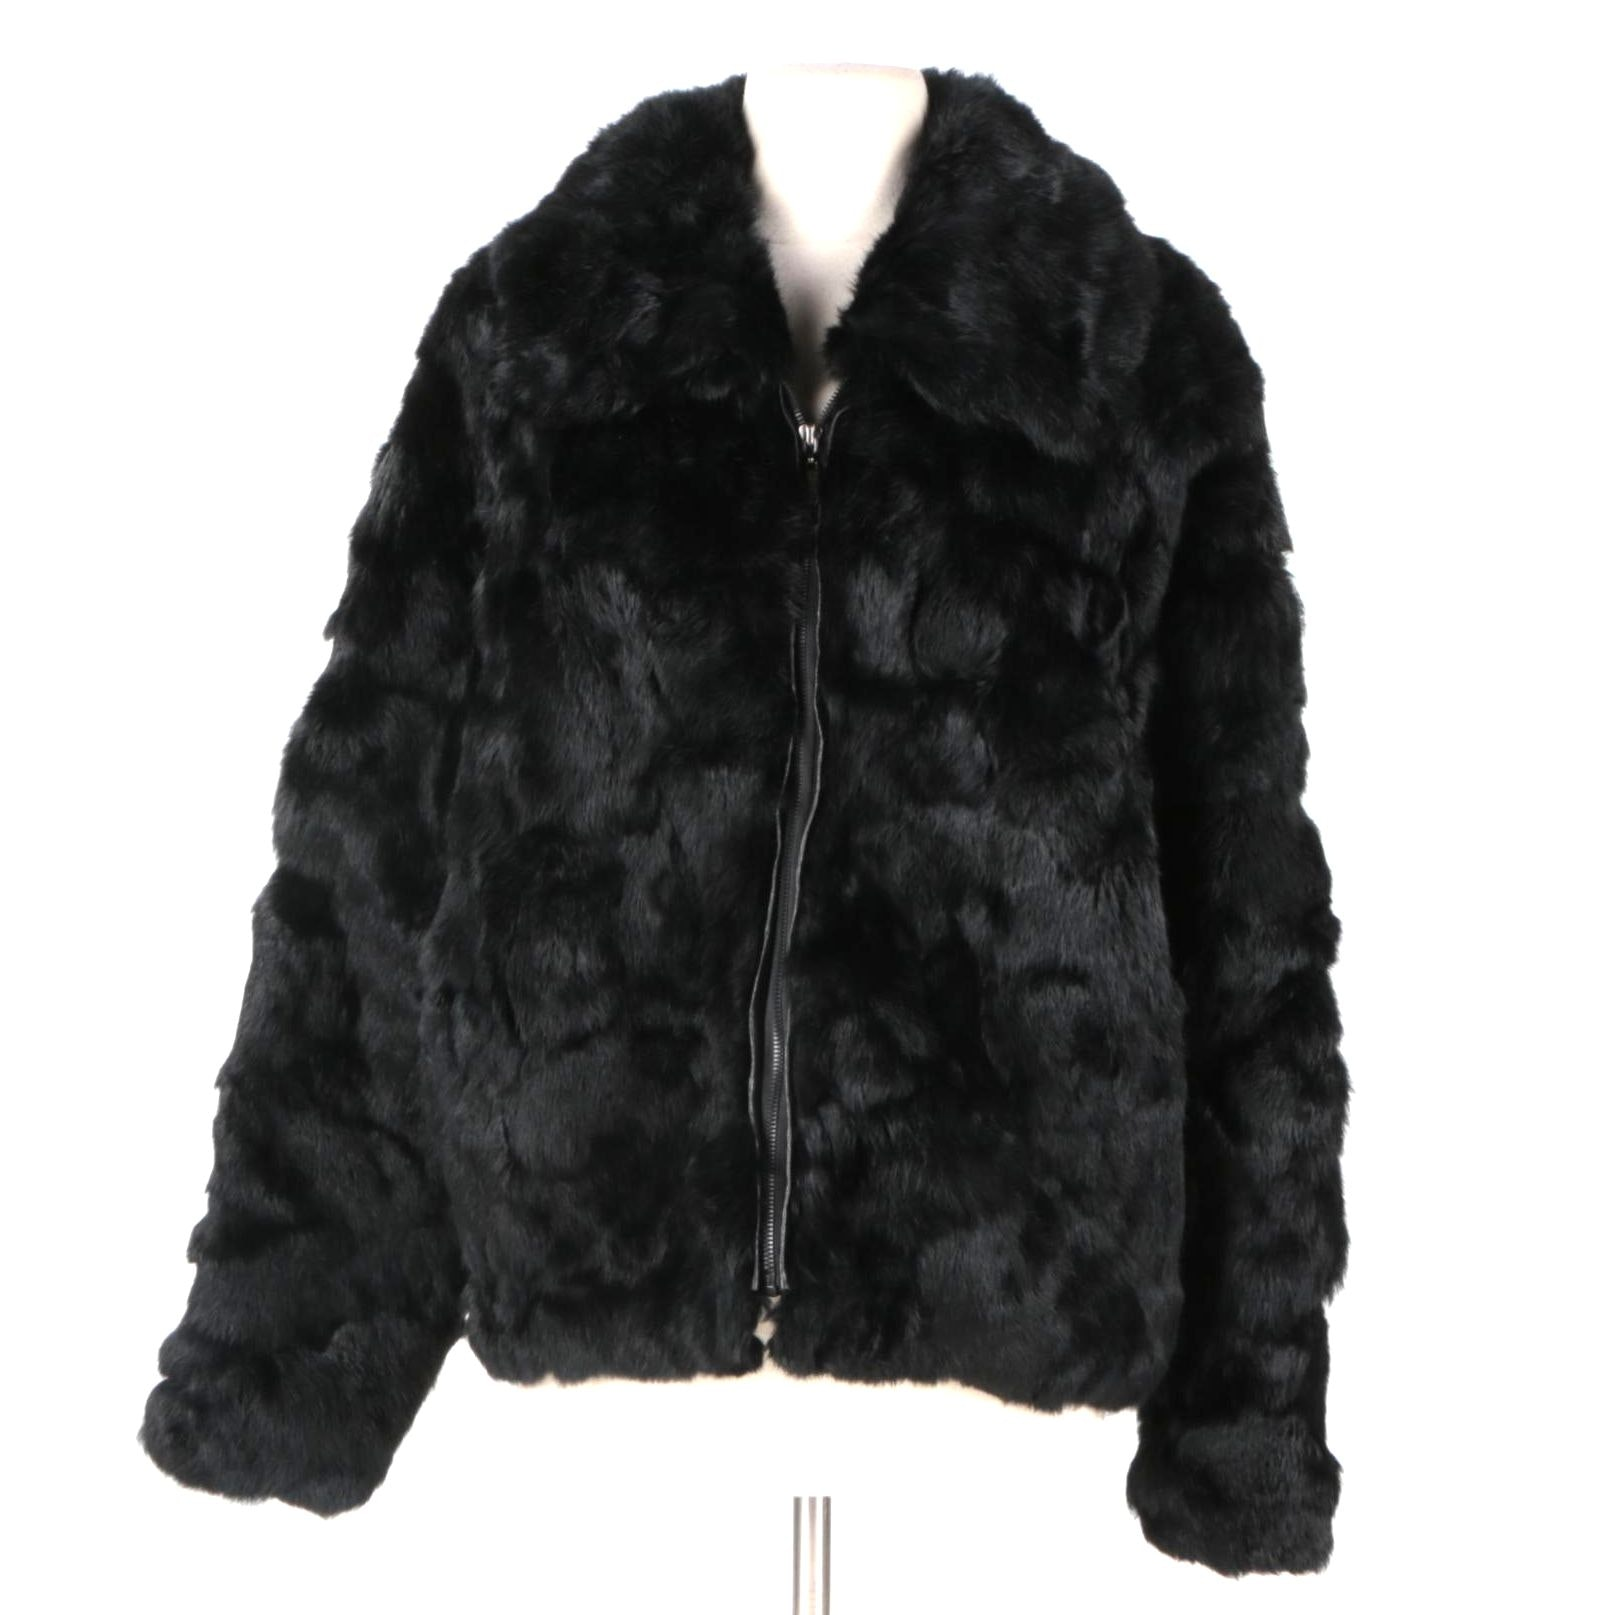 Arielle Dyed Rabbit Fur Jacket